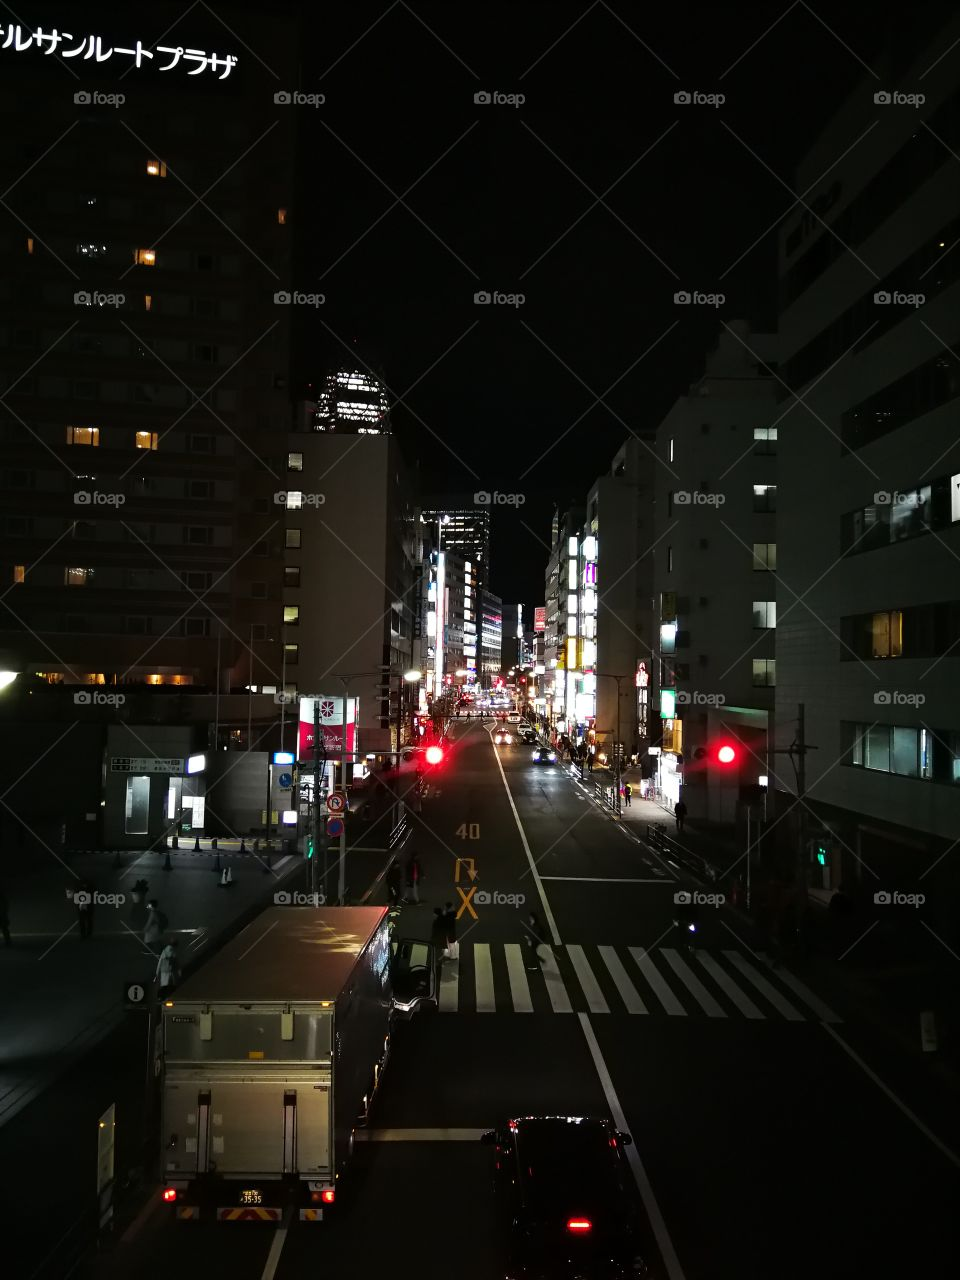 Stoplight in the streets of Tokyo